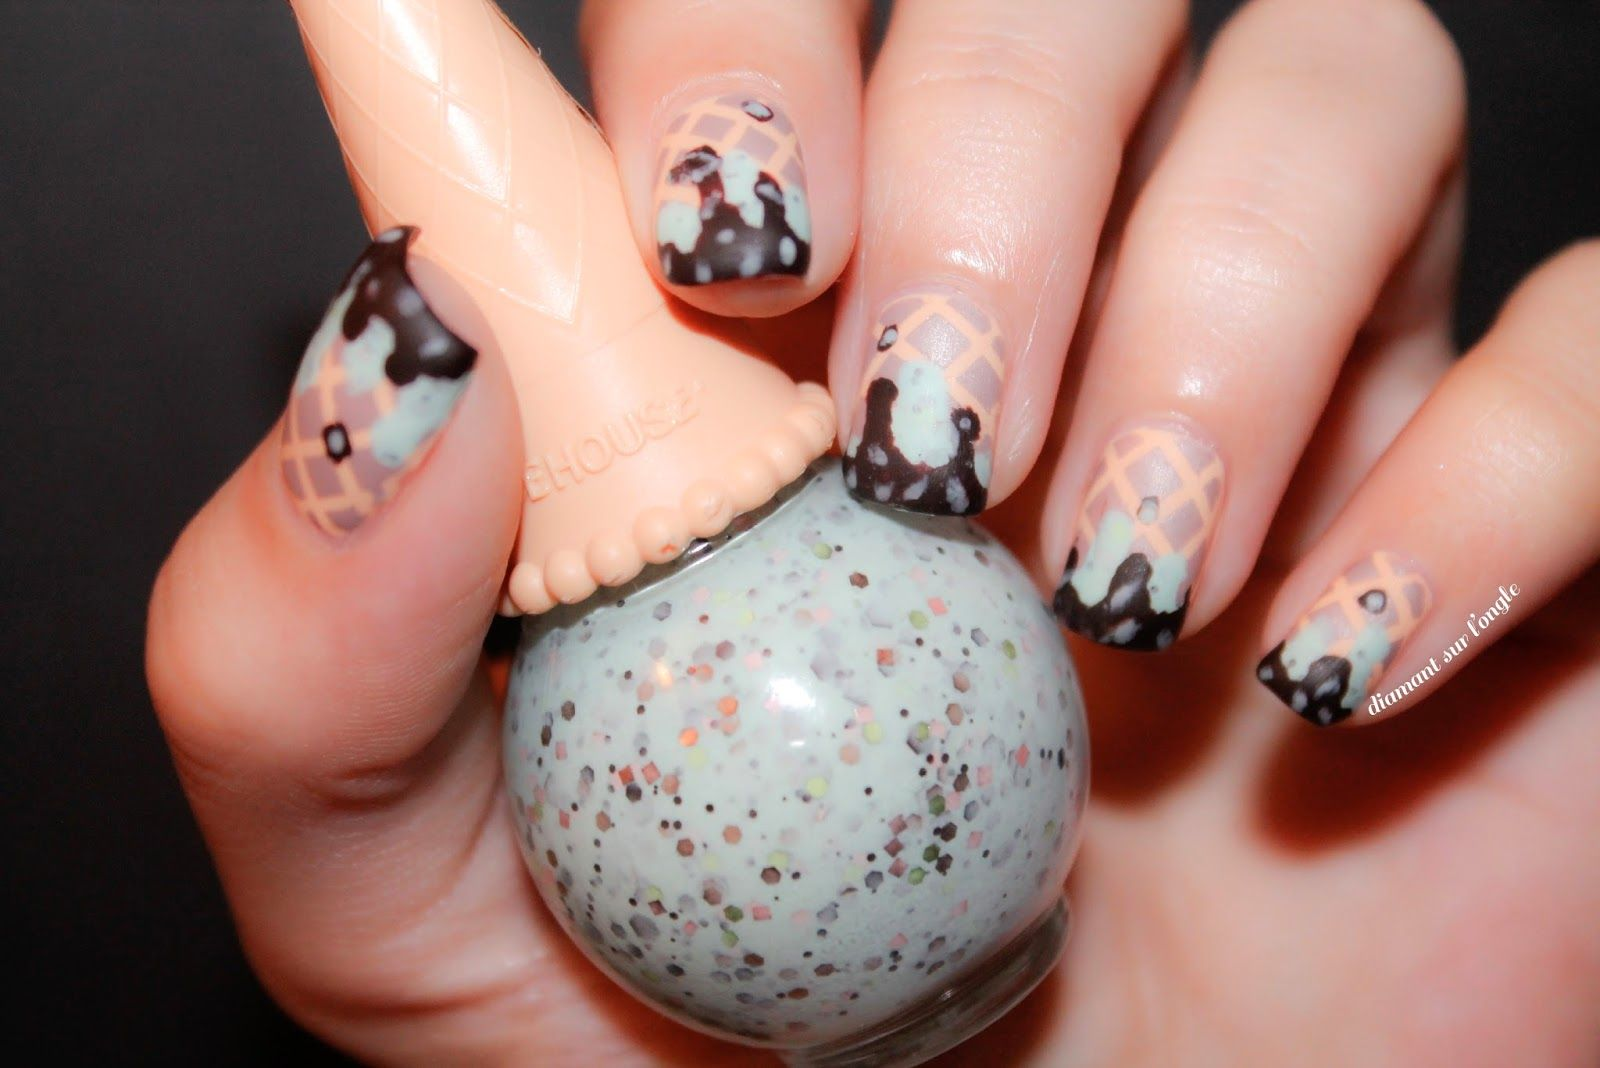 ❄ Ice Cream Nails // Nailstorming by diamant sur l\'ongle | Nail art ...